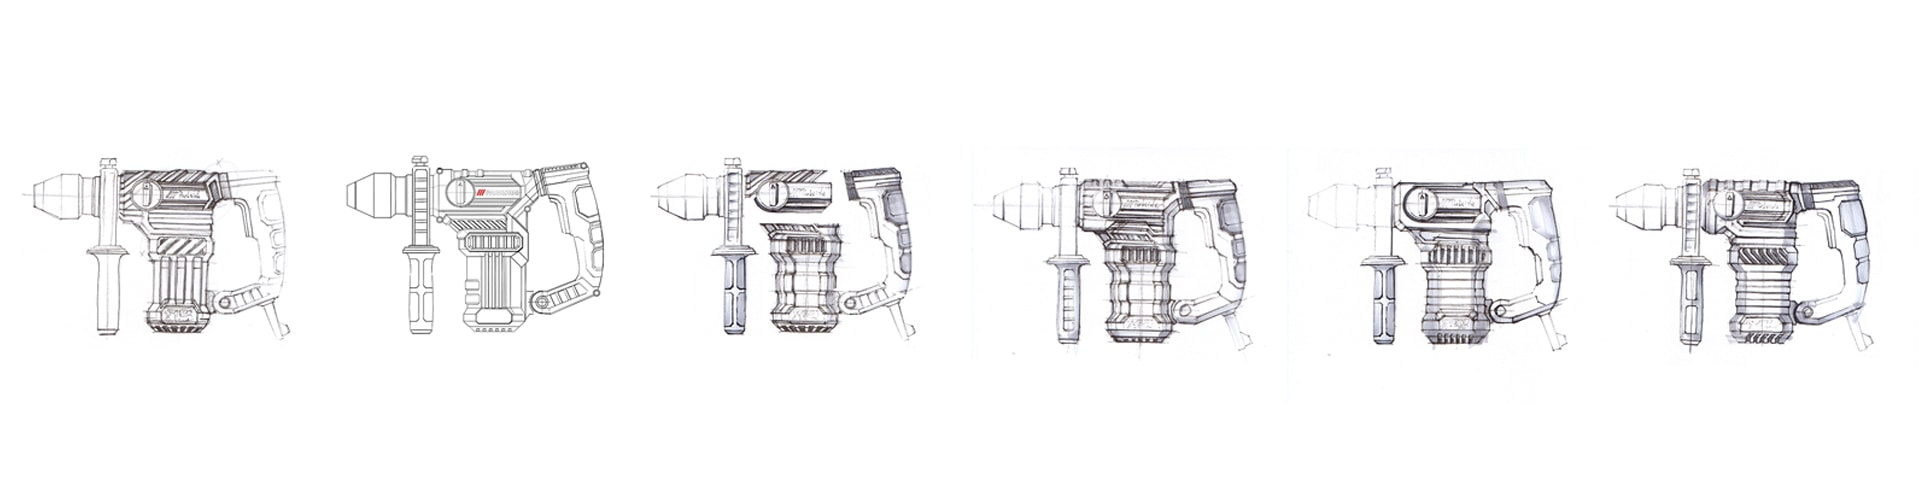 parkside_hammer_heavy_duty_industrialdesign_design_sketch_panorama